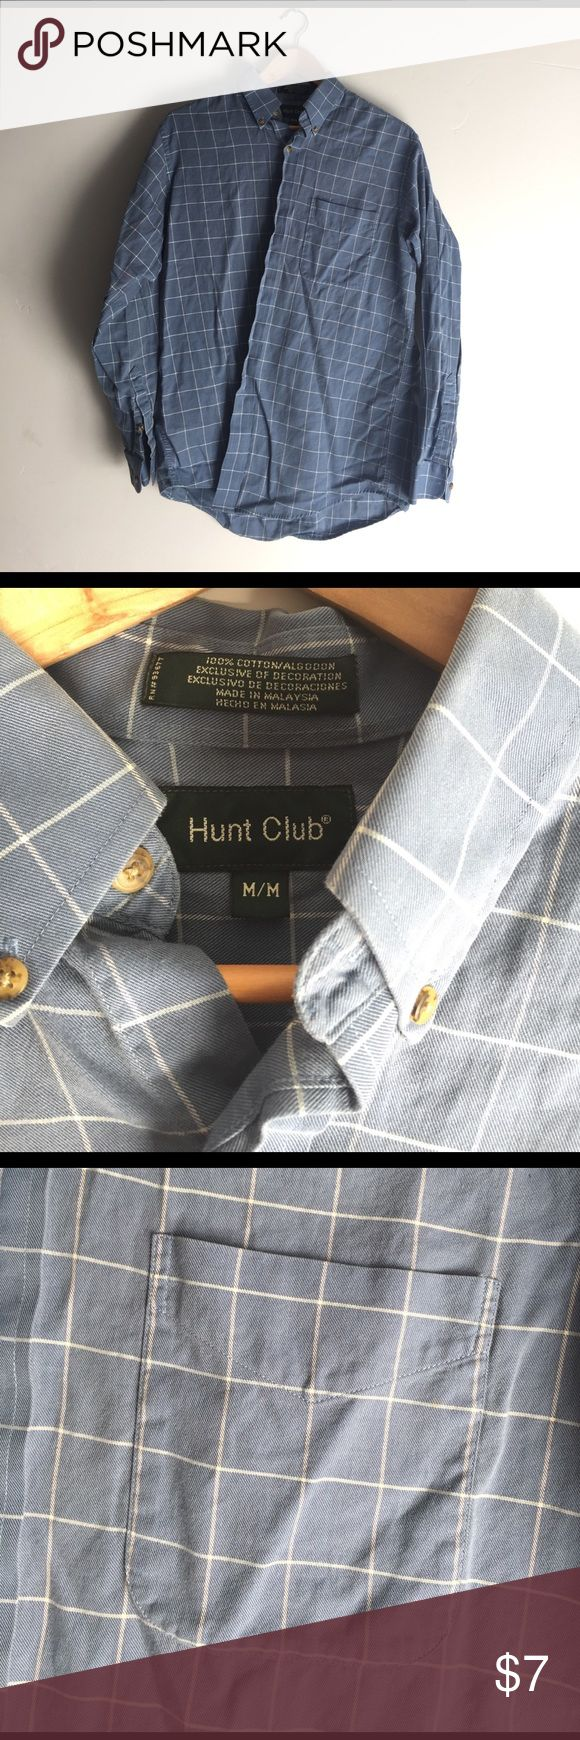 Med M's cotton plaid button-down from Hunt Club Great condition! Feel free to ask any questions. Hunt Club Shirts Casual Button Down Shirts